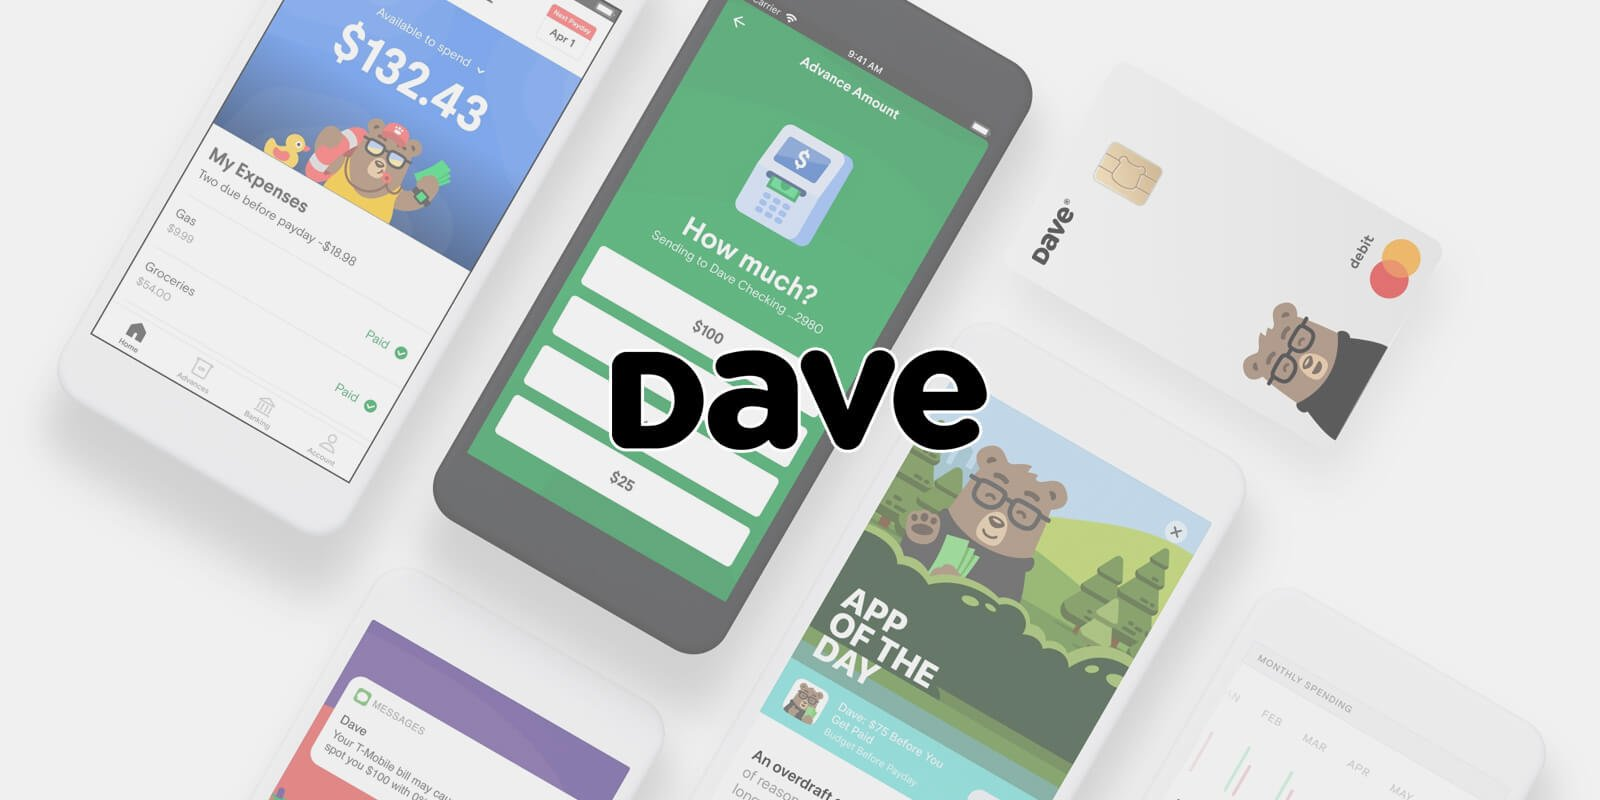 Dave Data Breach Affects 7.5 Million Users, Leaked On Hacker Forum